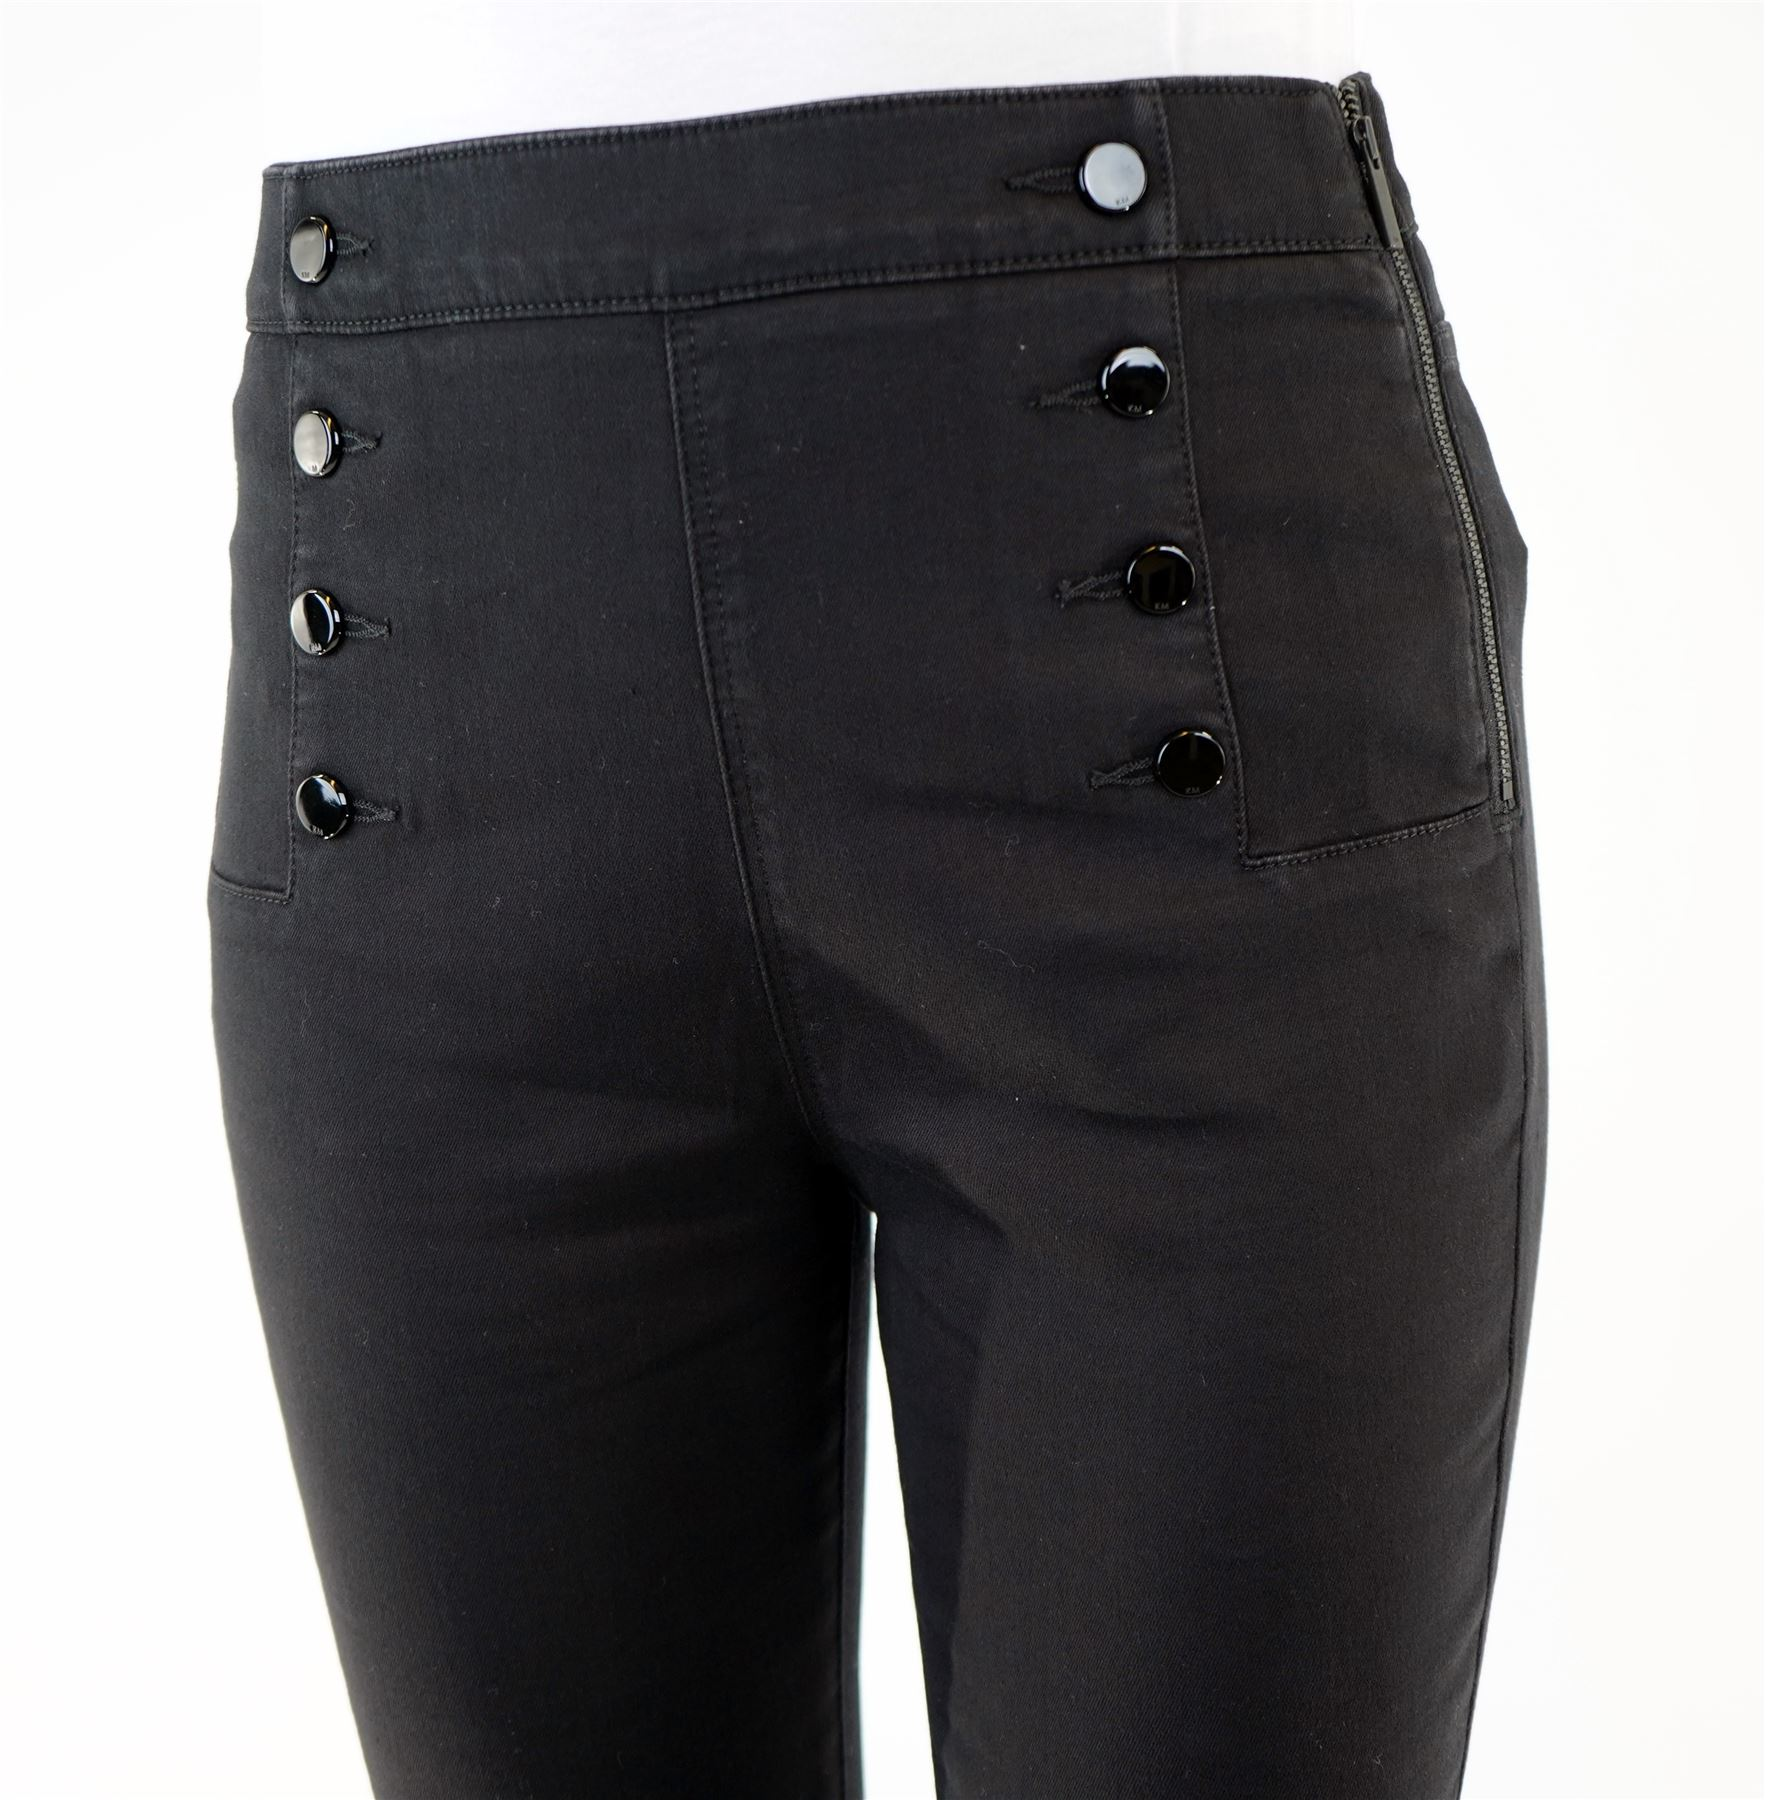 thumbnail 27 - Karen Millen Womens Casual Black Denim Button Jegging Ladies Jean Stylish Gift